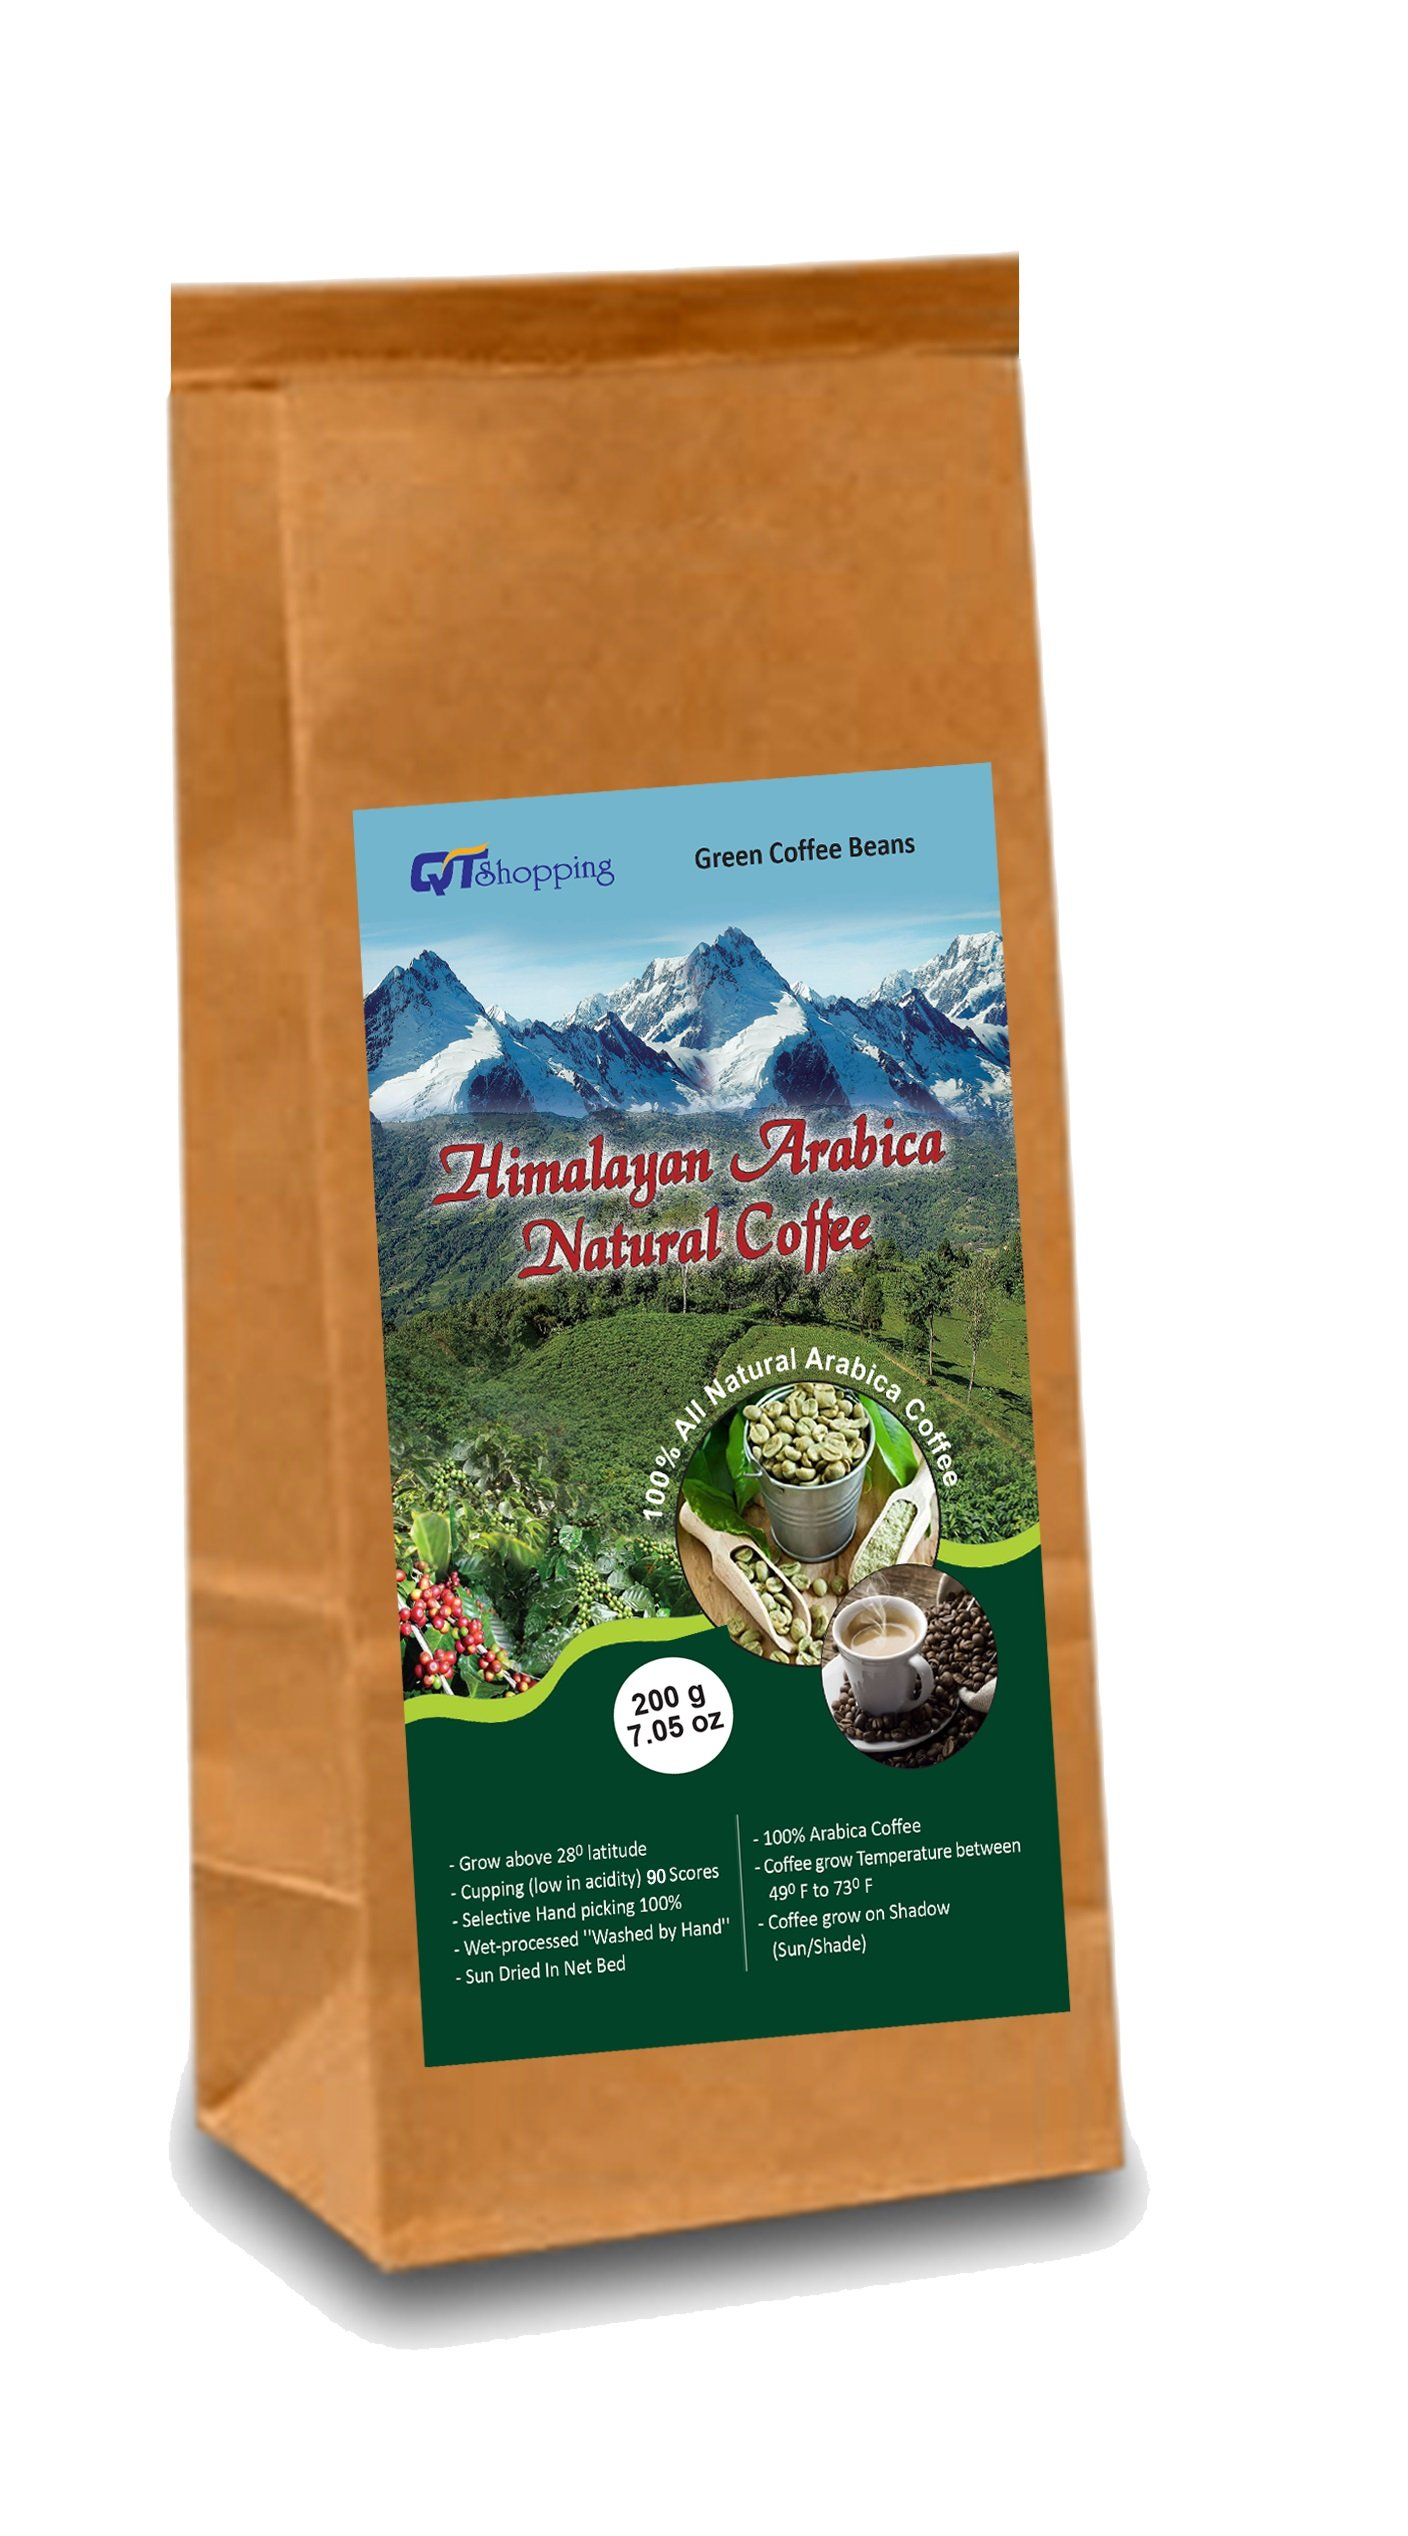 Himalayan Arabica Organic Green Beans Coffee - World's Best Organic Coffee | Product of Himalayas, Nepal (Net Wt. 200g | 7.05 oz) by QT Shopping LLC